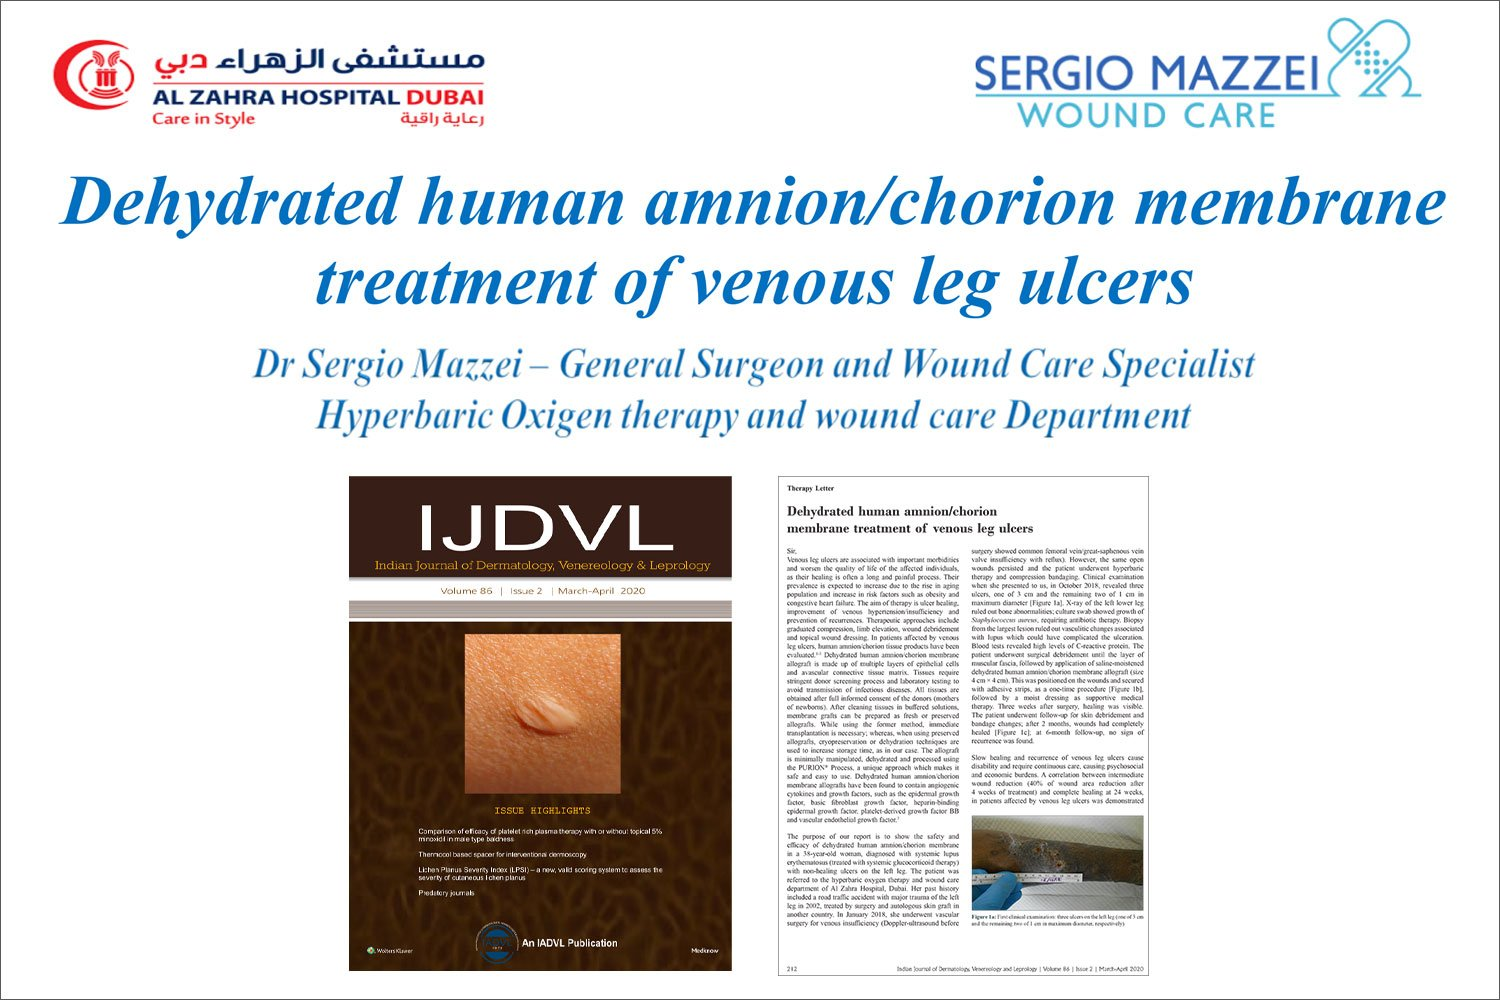 Dehydrated human amnion chorion membrane treatment of venous leg ulcers